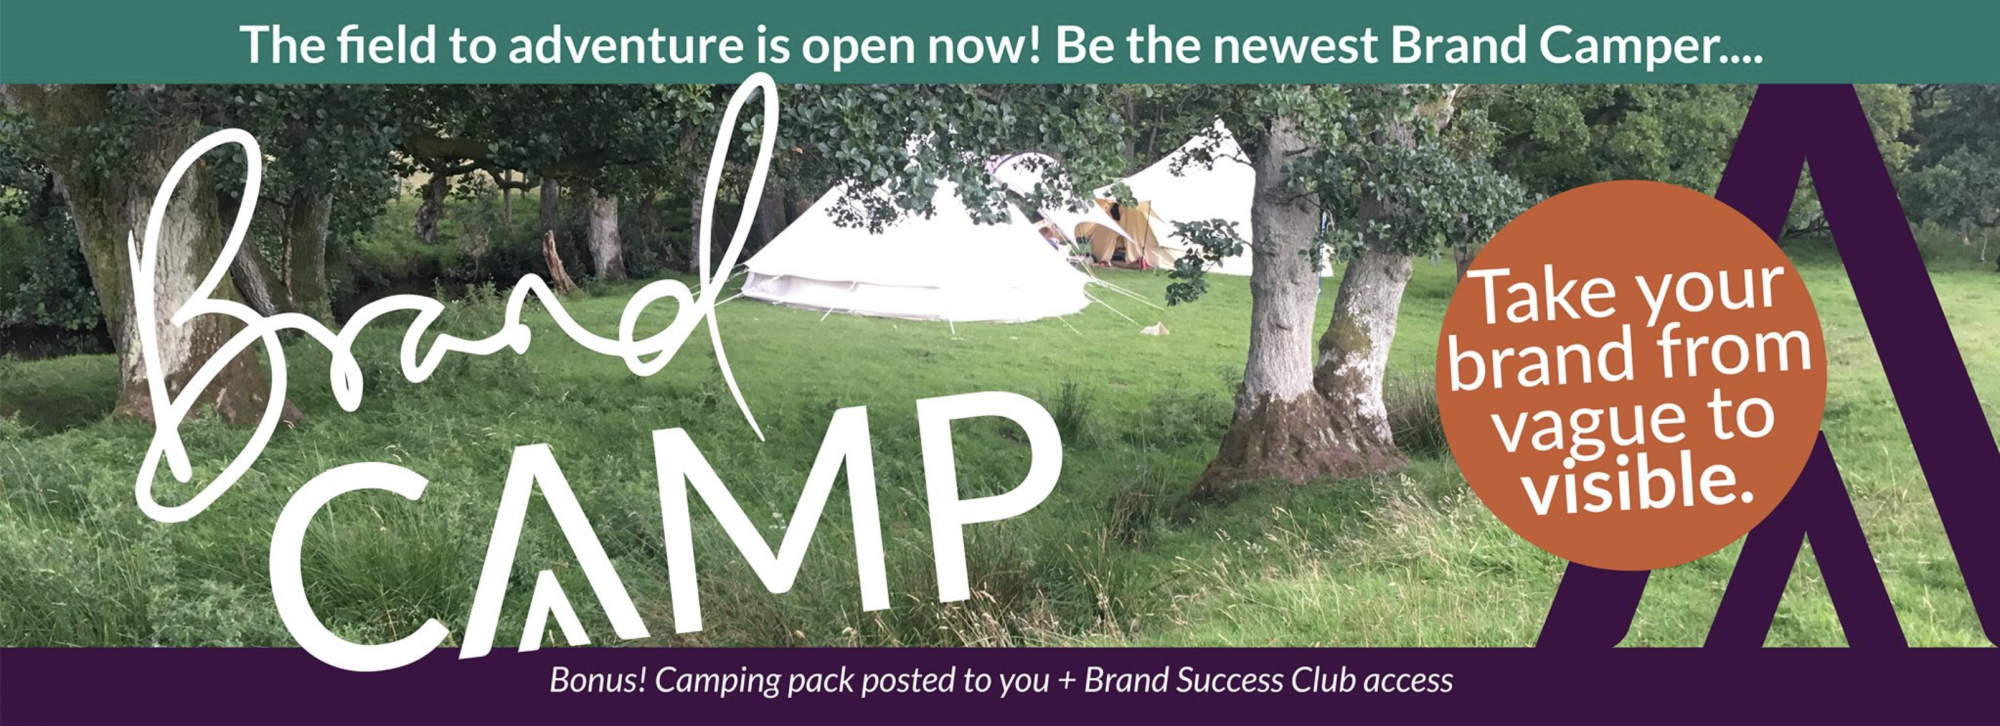 Image of a tent in the background between some trees. Words say: Brand Camp. Take Your Brand from Vague to Visible.